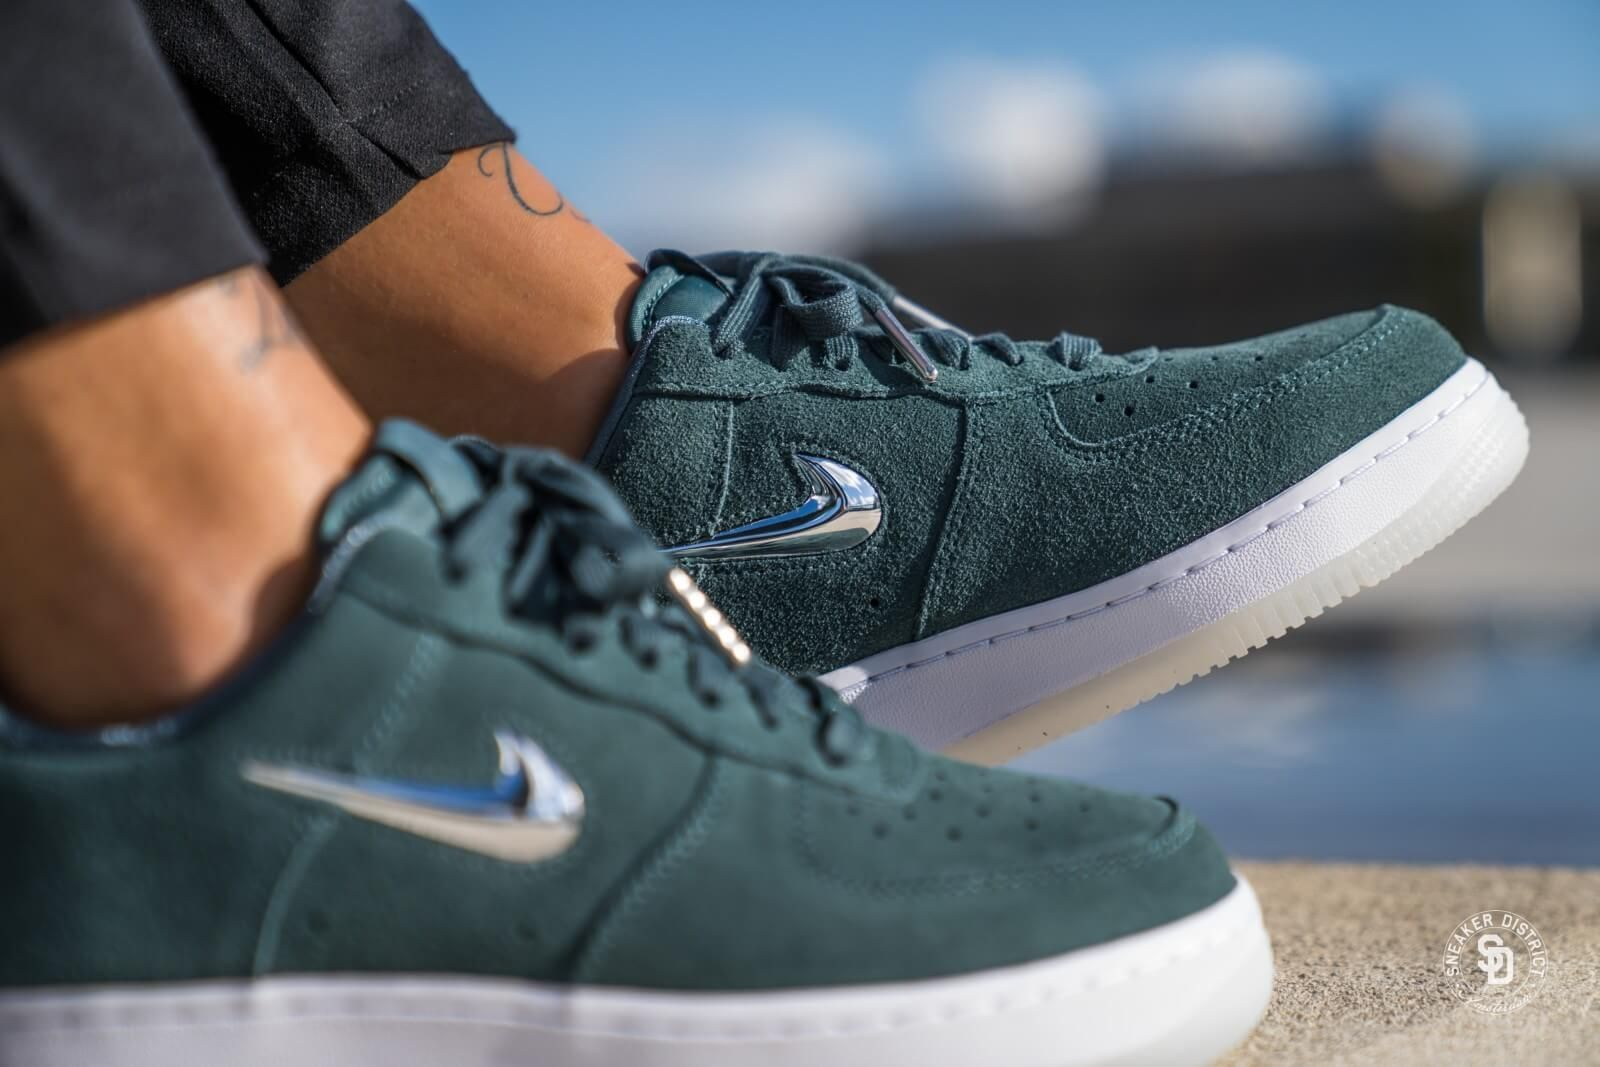 low priced 3841d 314b1 Nike Women's Air Force 1 '07 Premium LX Faded Spruce/Metallic Silver -  AO3814-300